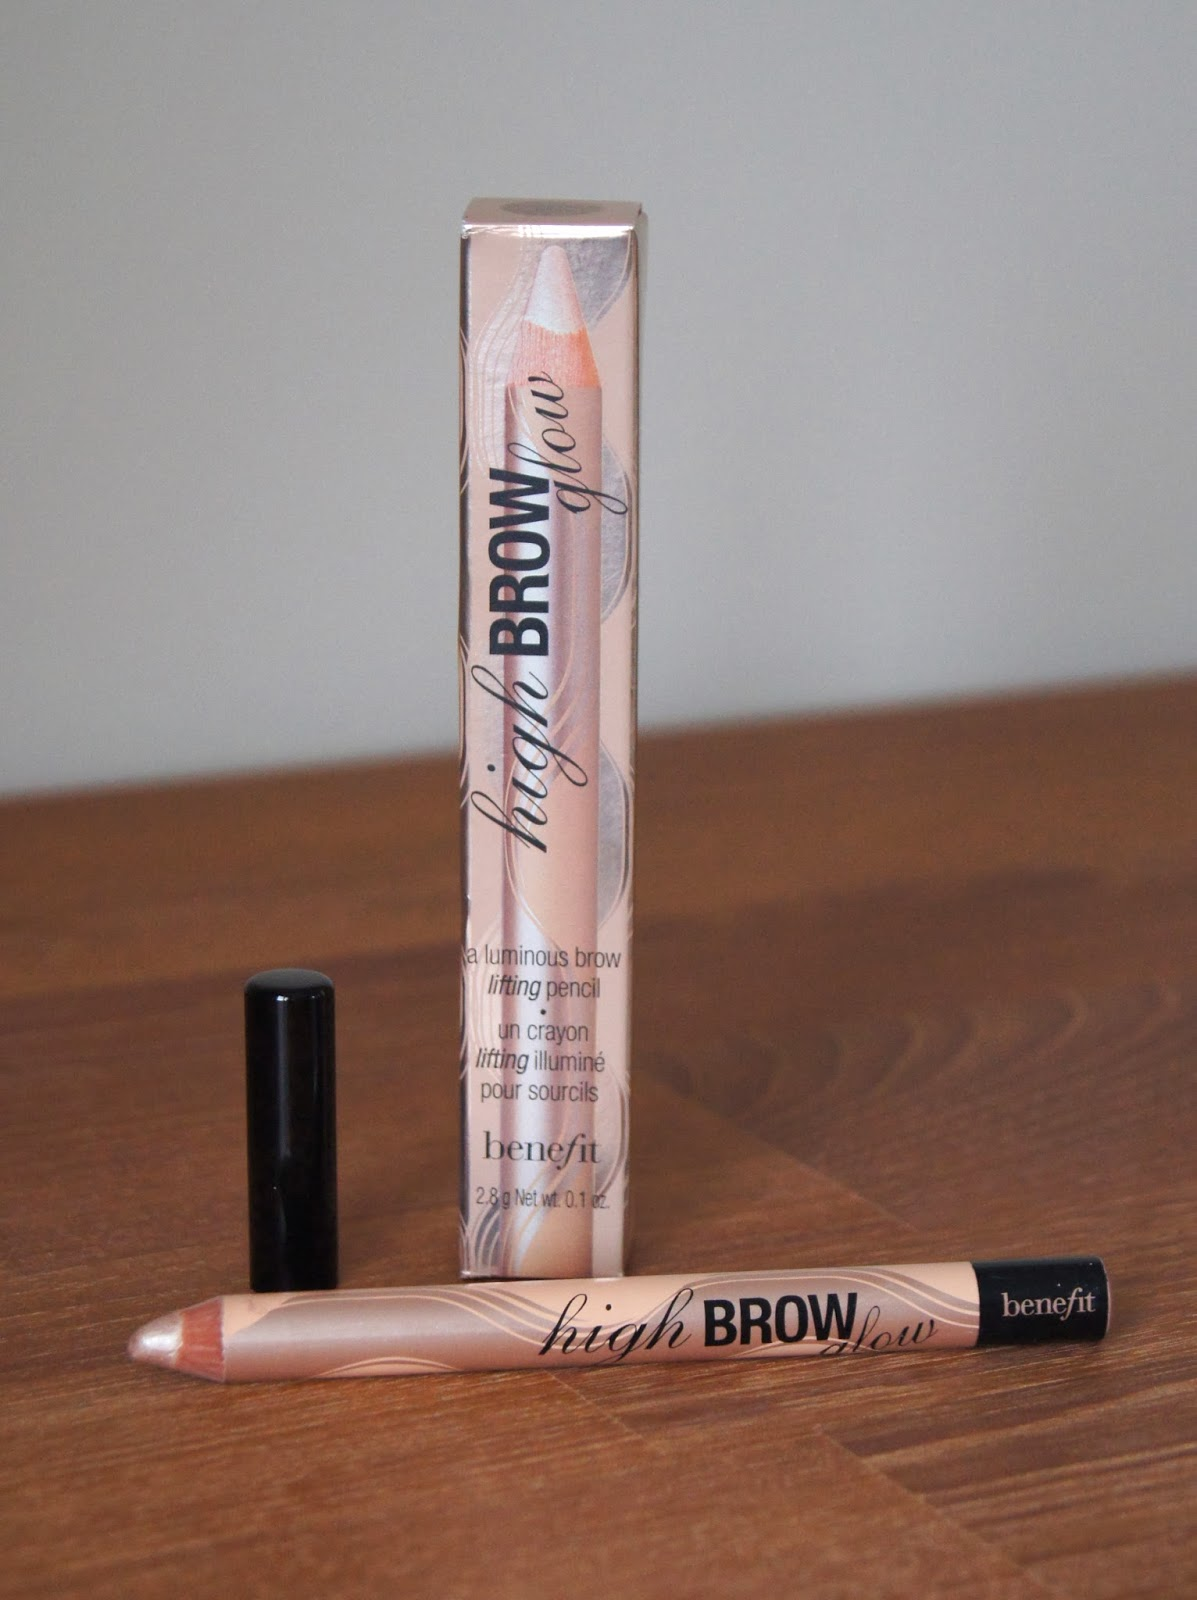 benefit high brow glow brow lifting pencil review